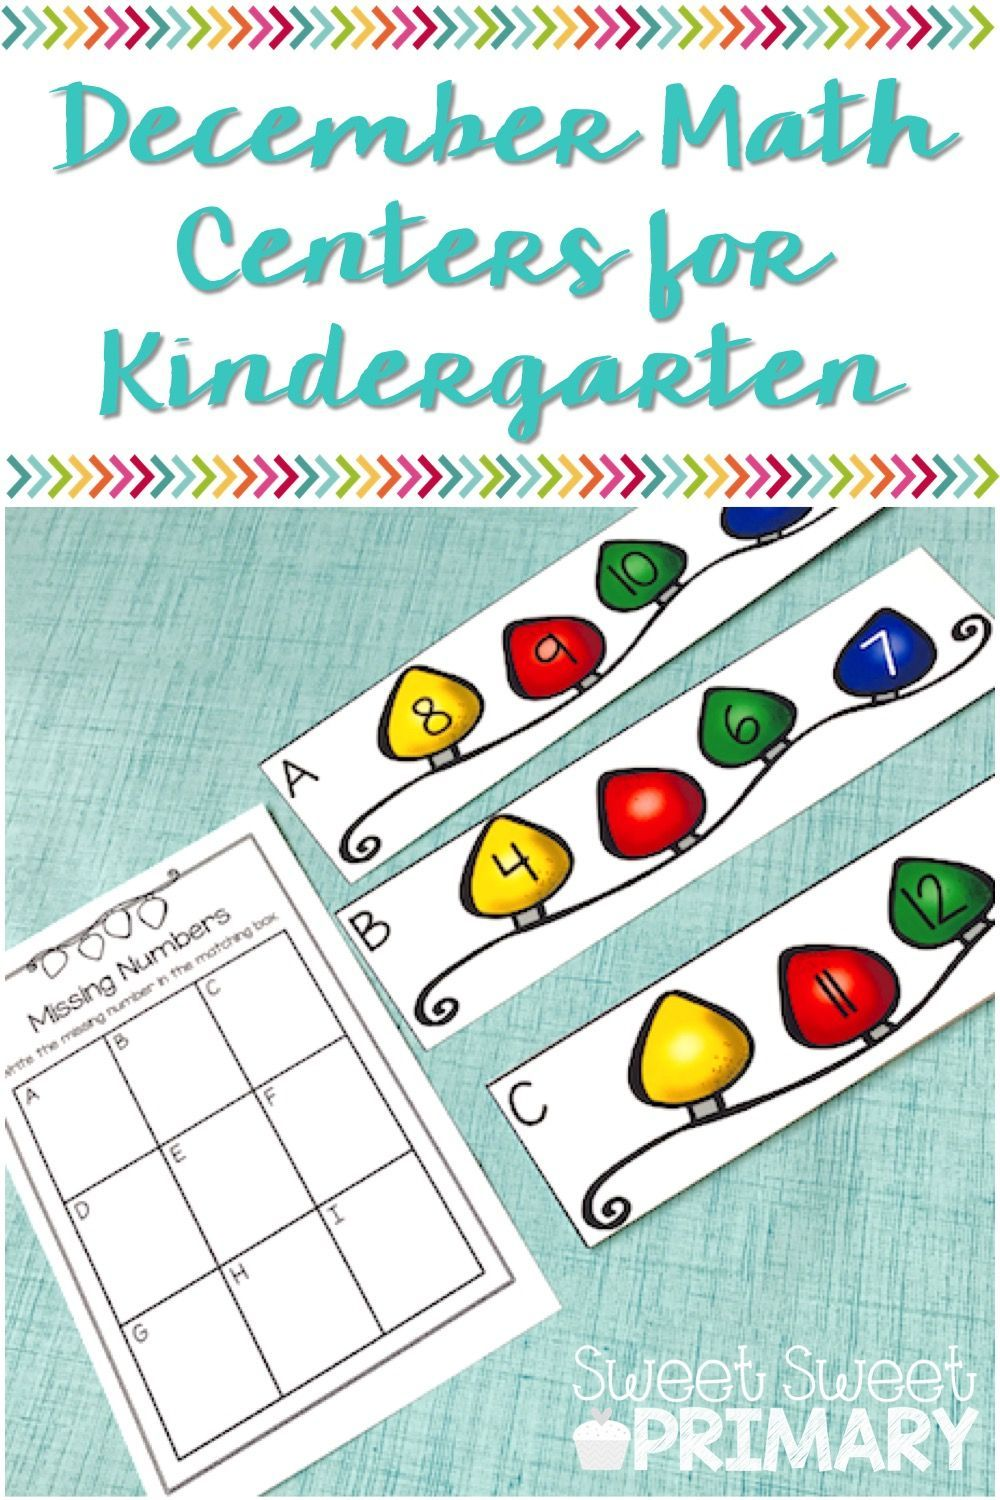 December Math Centers for Kindergarten | Holidays at school ...